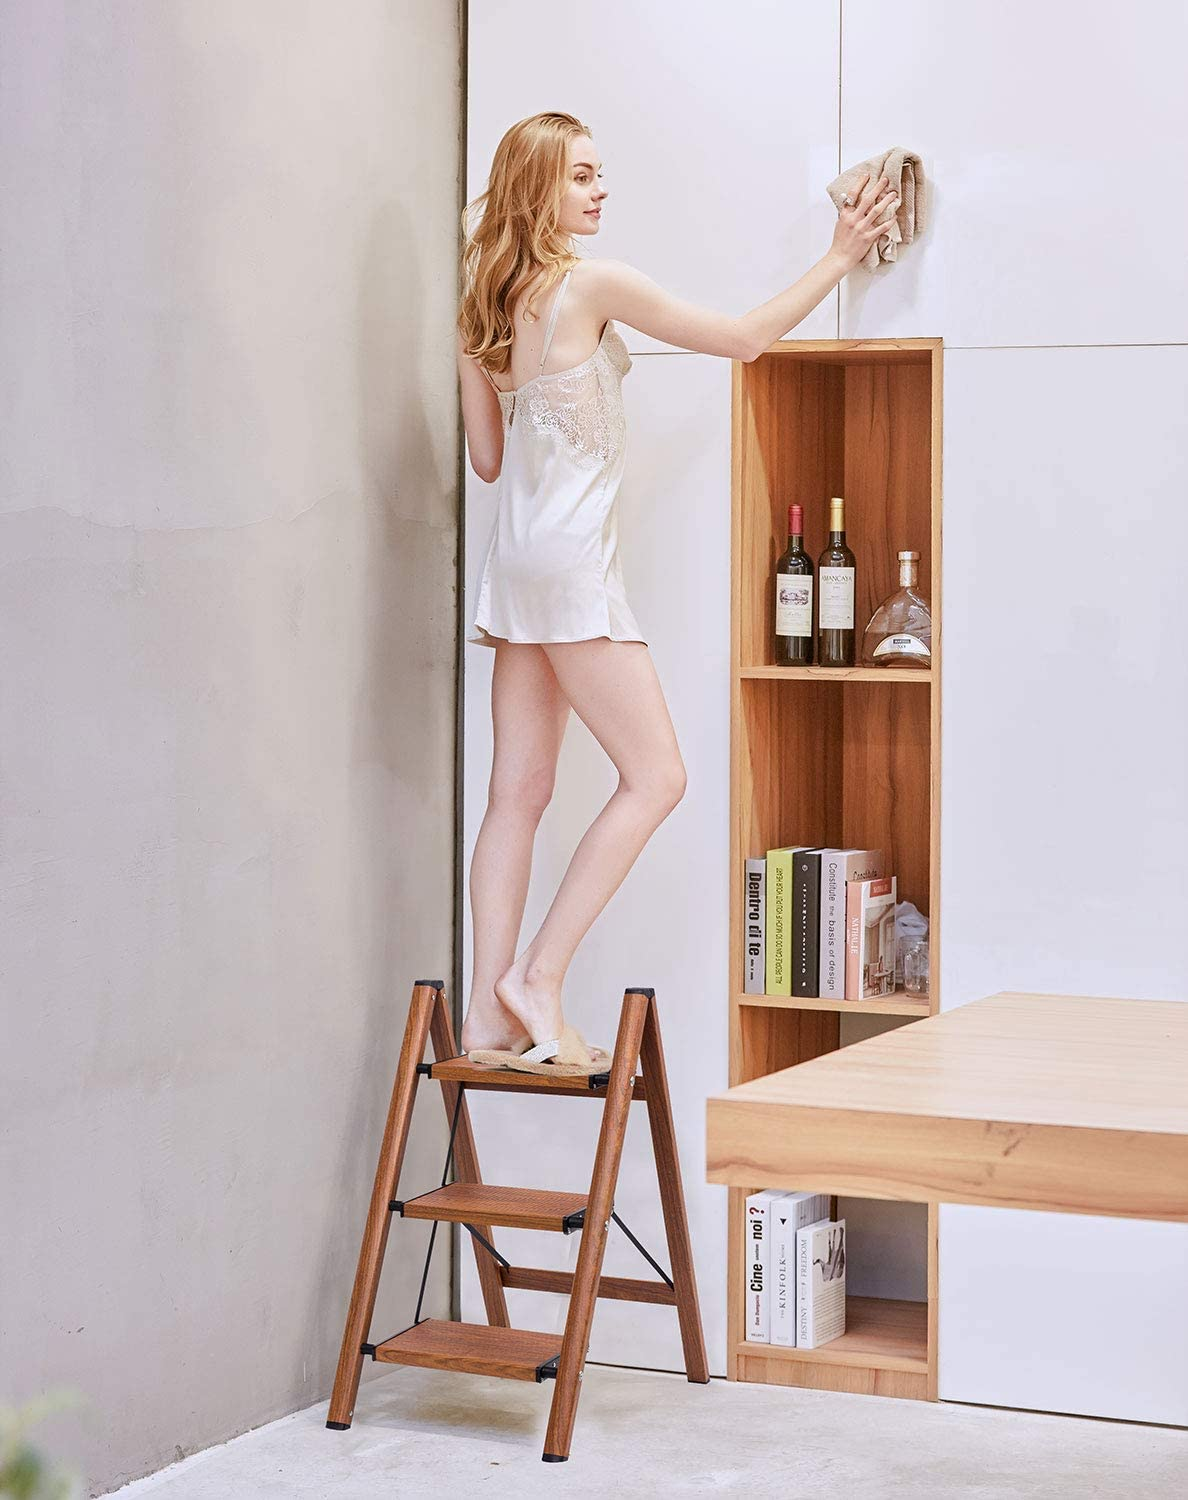 3 Step Ladder Woodgrain Shelf Aluminum Lightweight Folding with Anti-Slip and Wide Pedal for Home and Kitchen Space Saving